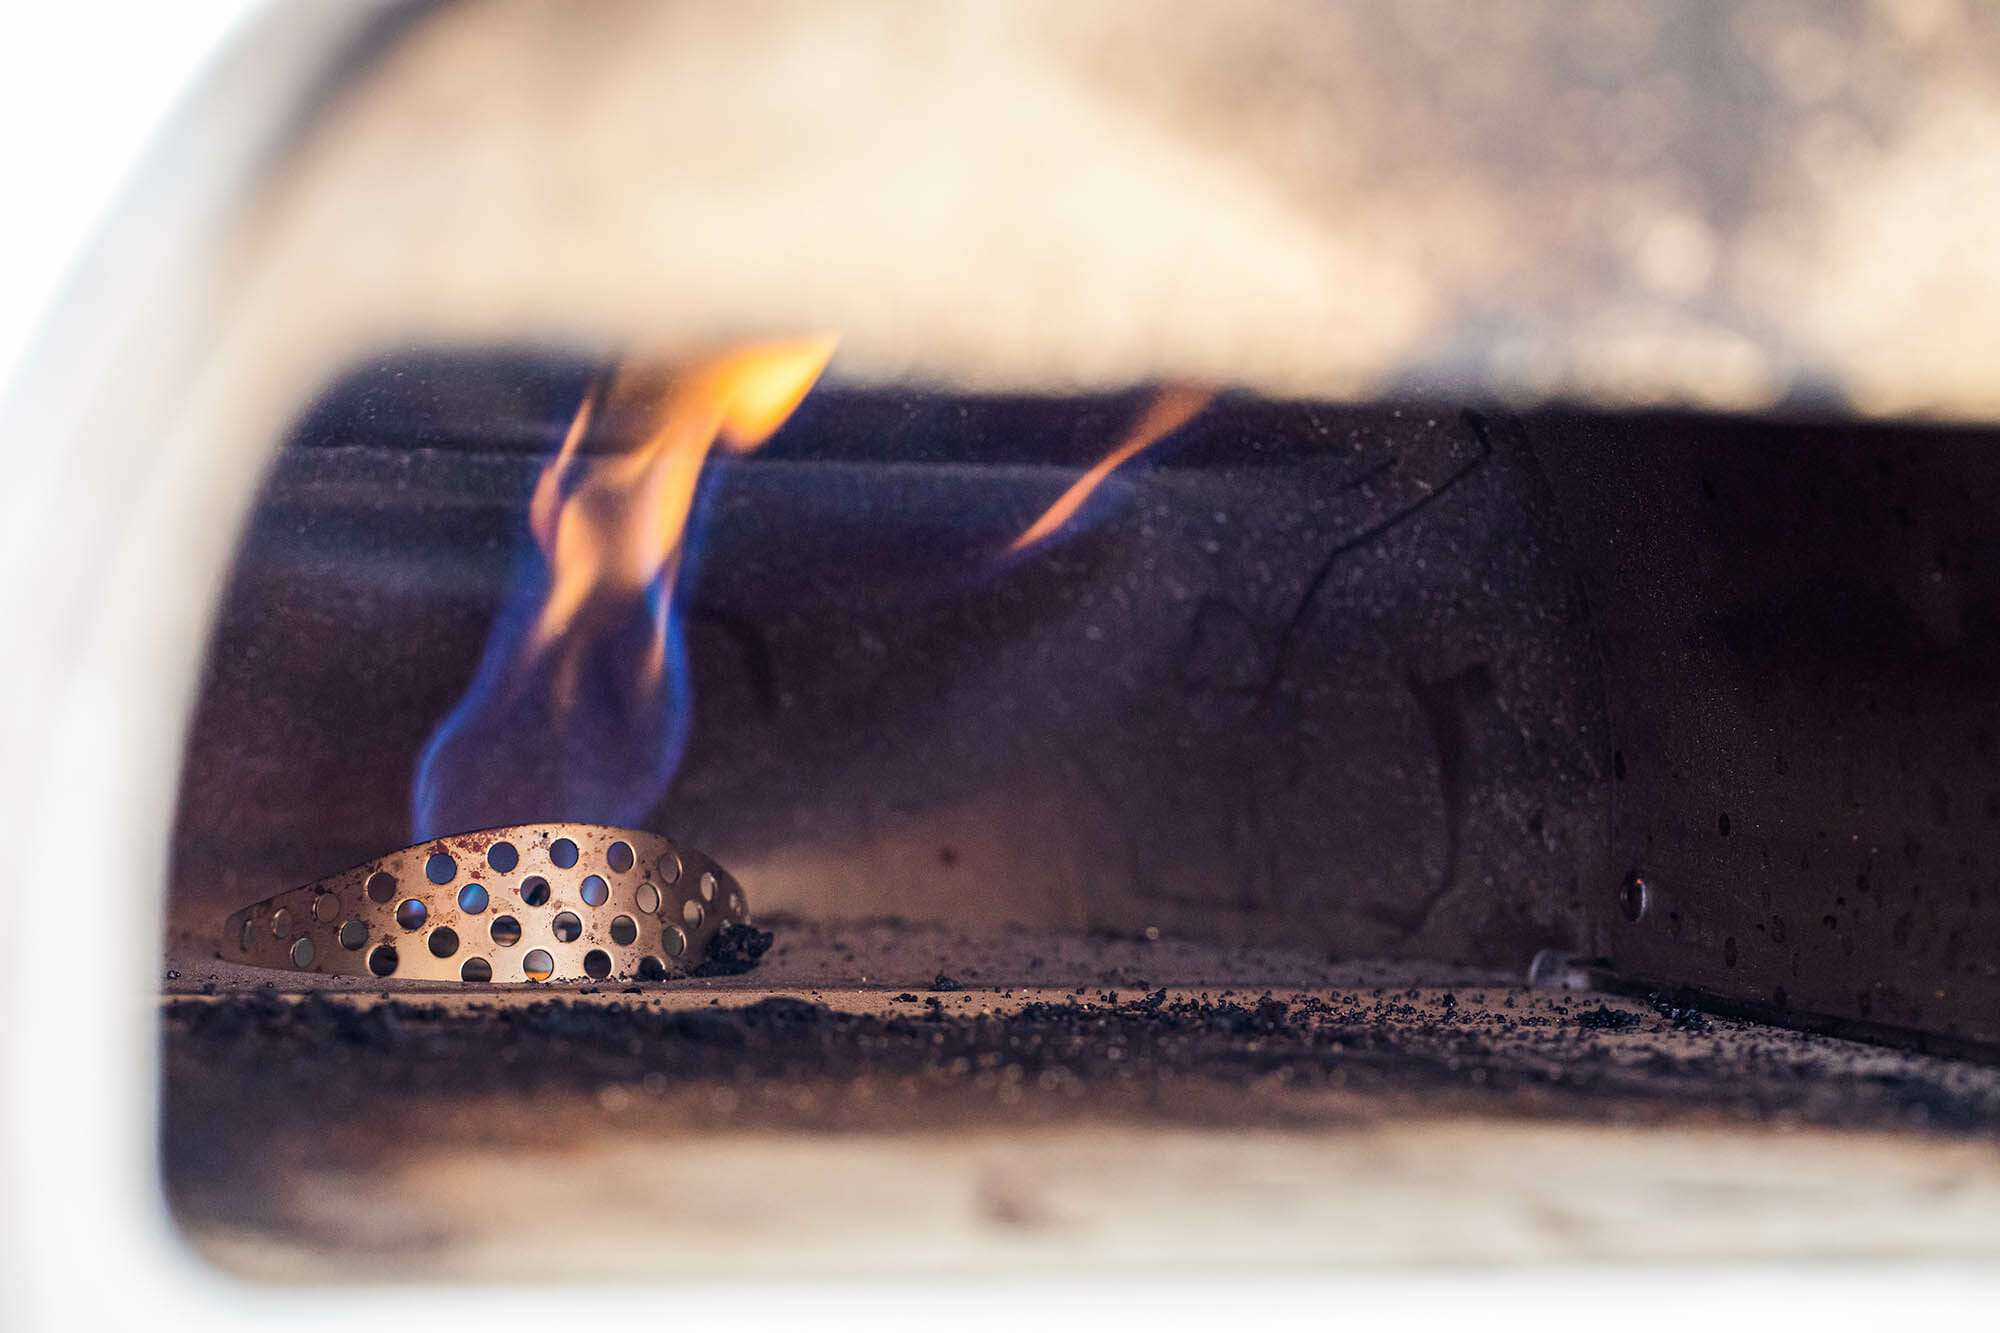 What is the Roccbox? This photo shows the inside of the pizza oven with the flame visible.